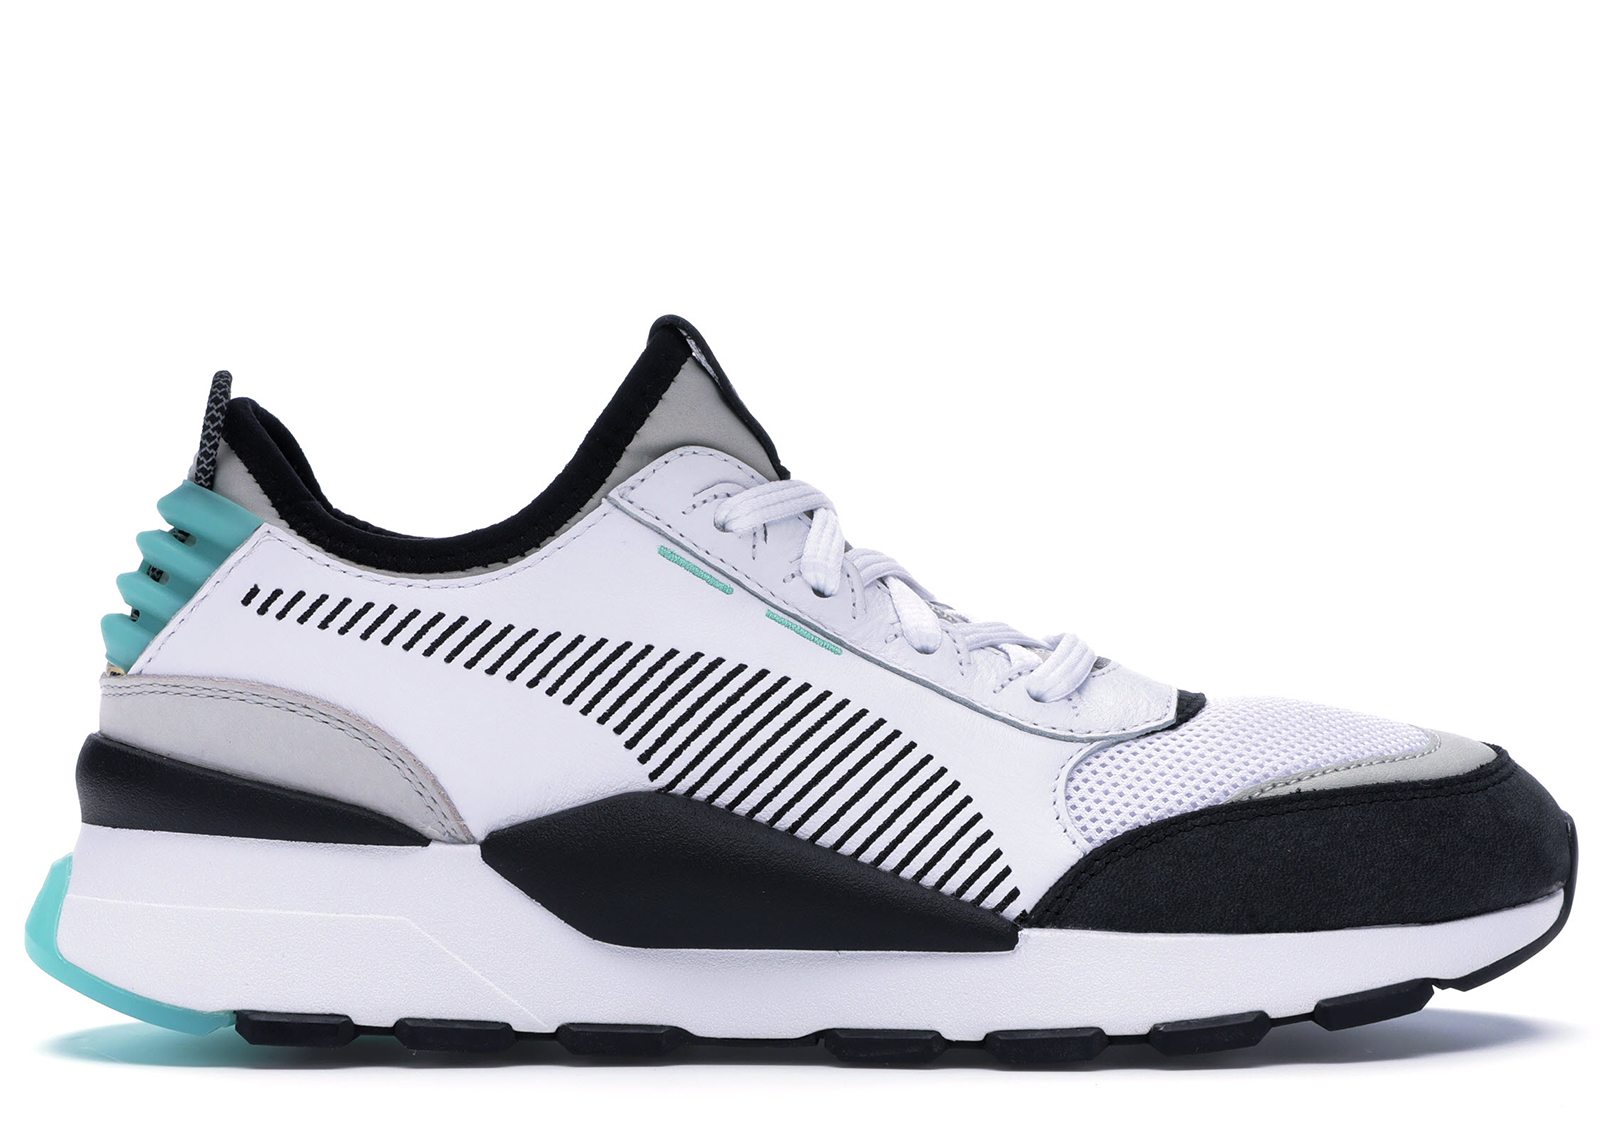 Puma RS-0 Re-Invention White Grey Violet - 366887-01